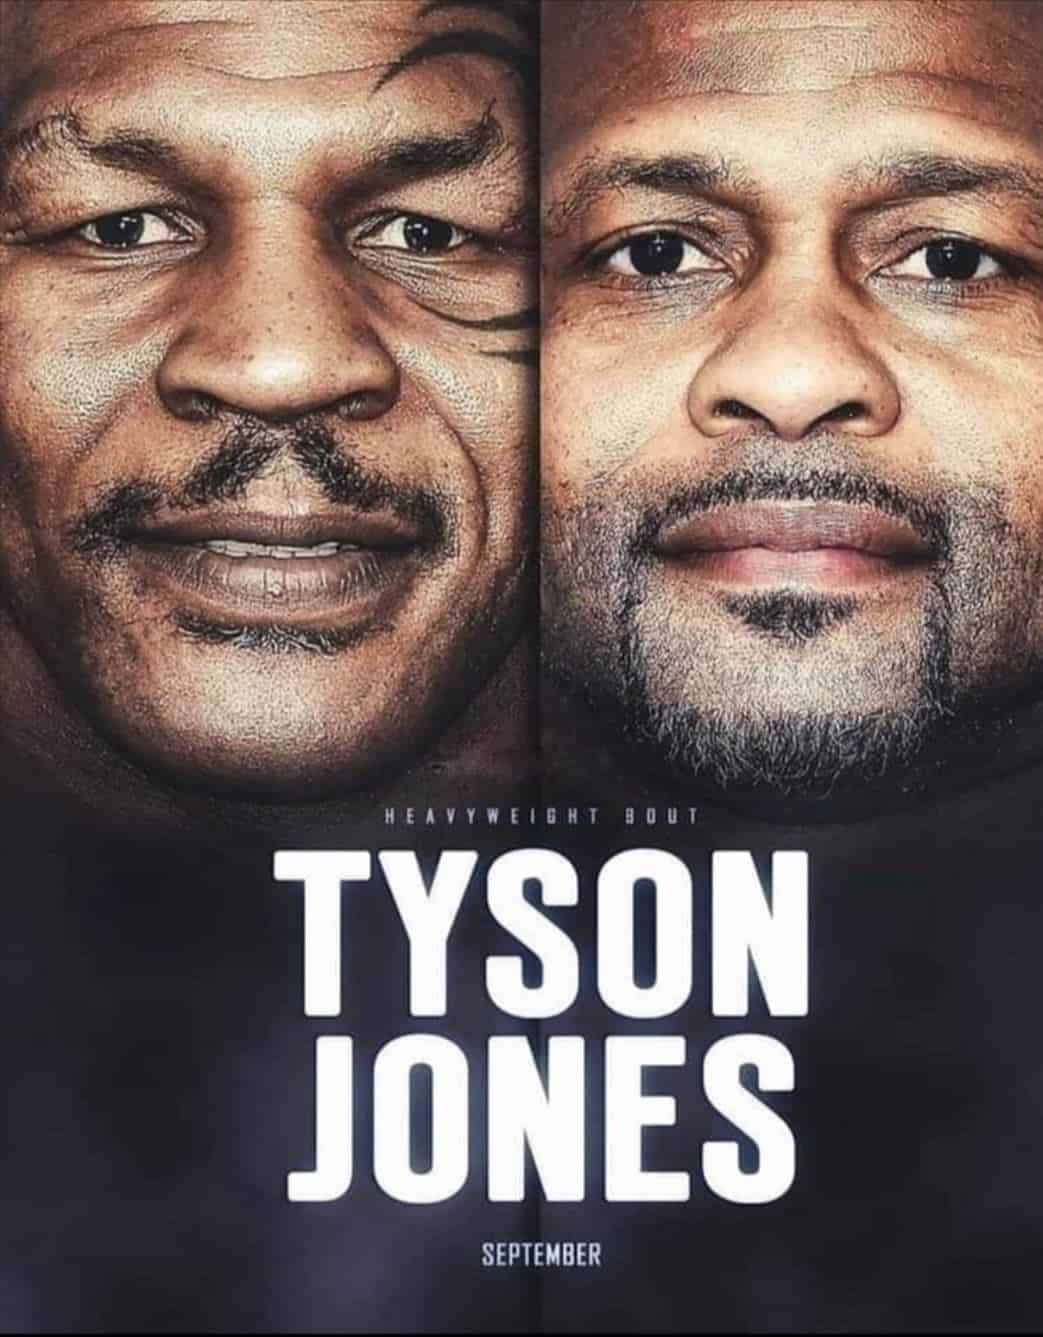 The Mike Tyson vs Roy Jones Jr. 1